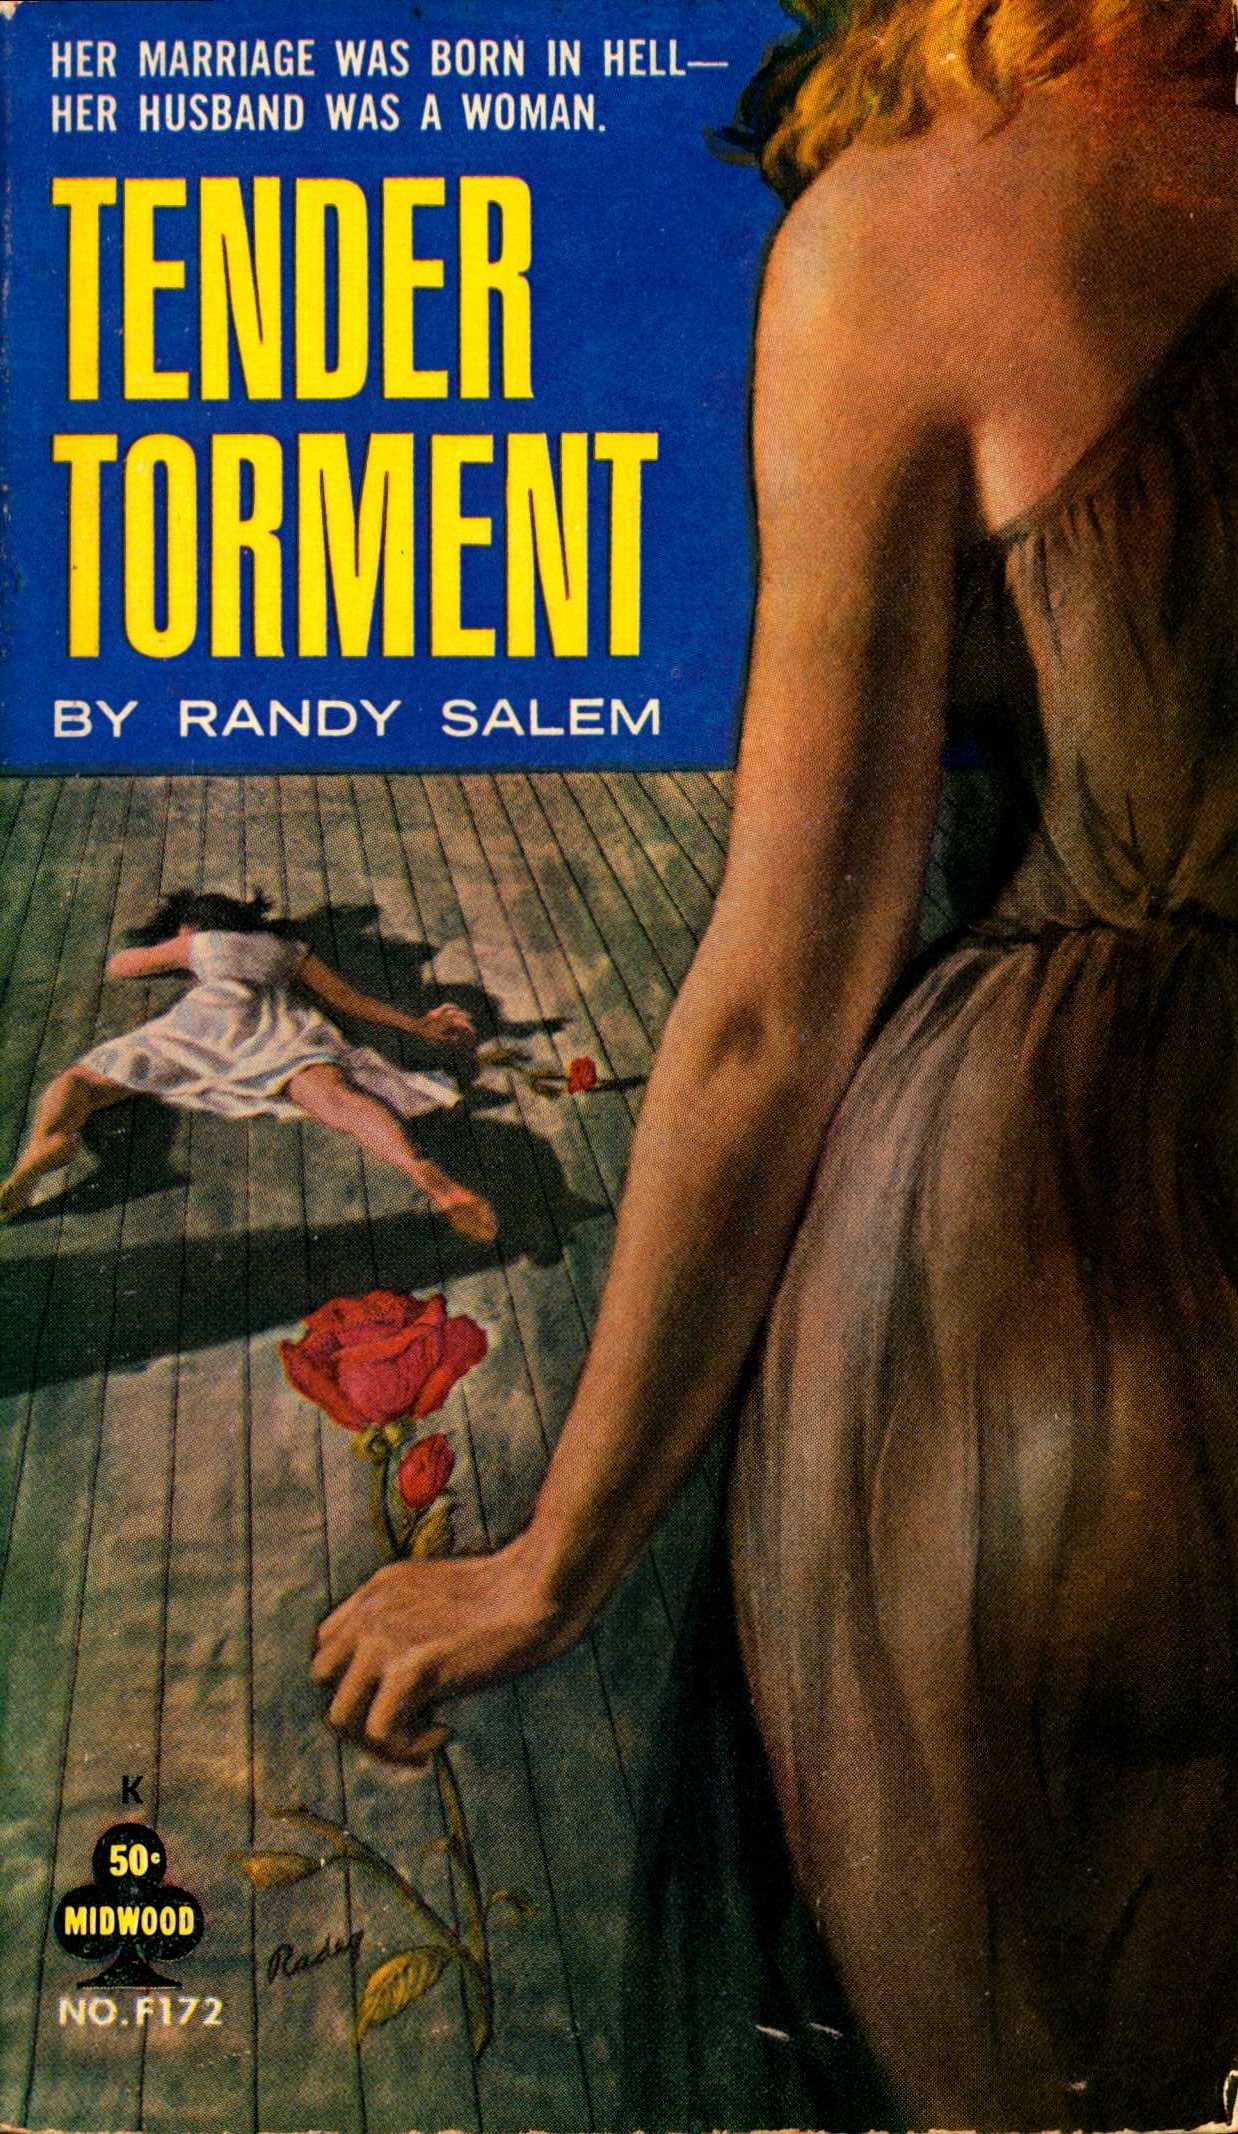 Cover to Tender Torment by Randy Salem